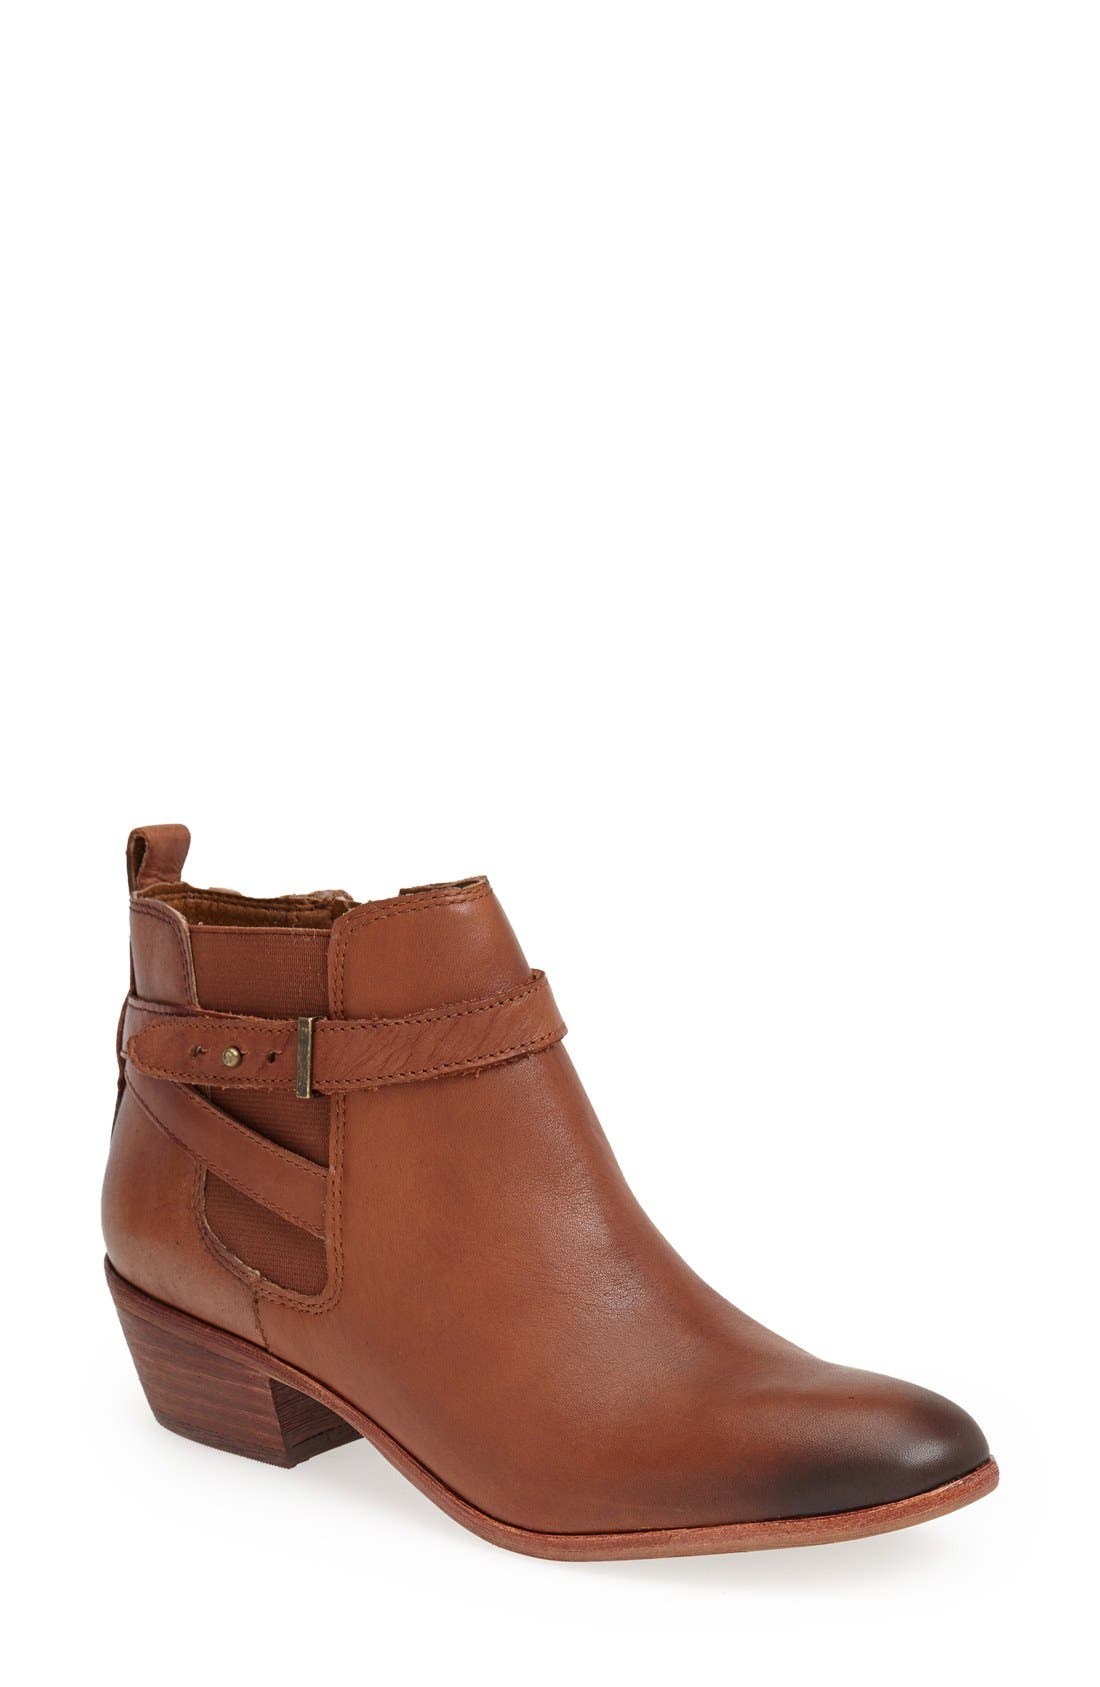 Alternate Image 1 Selected - Sam Edelman 'Pacific' Wraparound Strap Bootie (Nordstrom Exclusive)(Women)